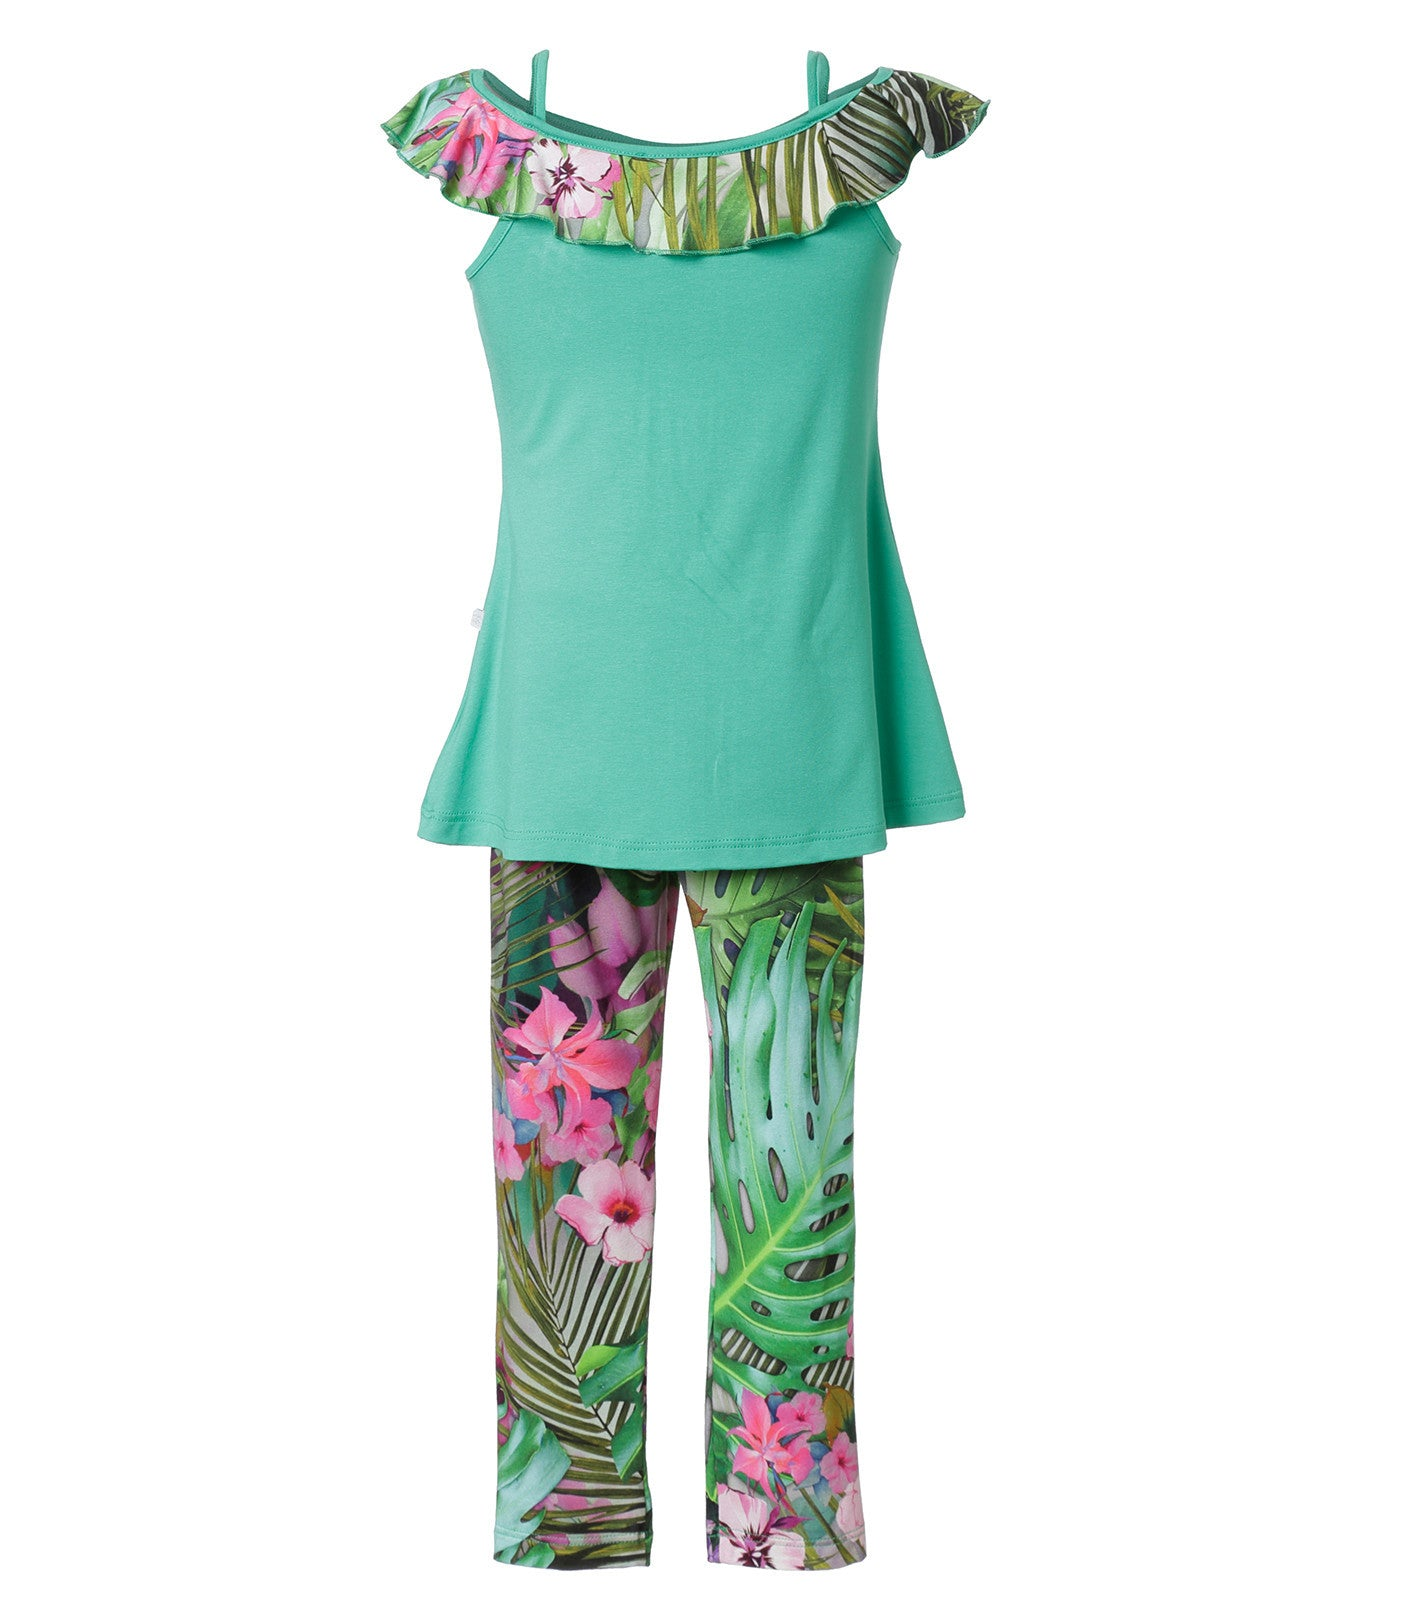 Green Floral dress set for girls